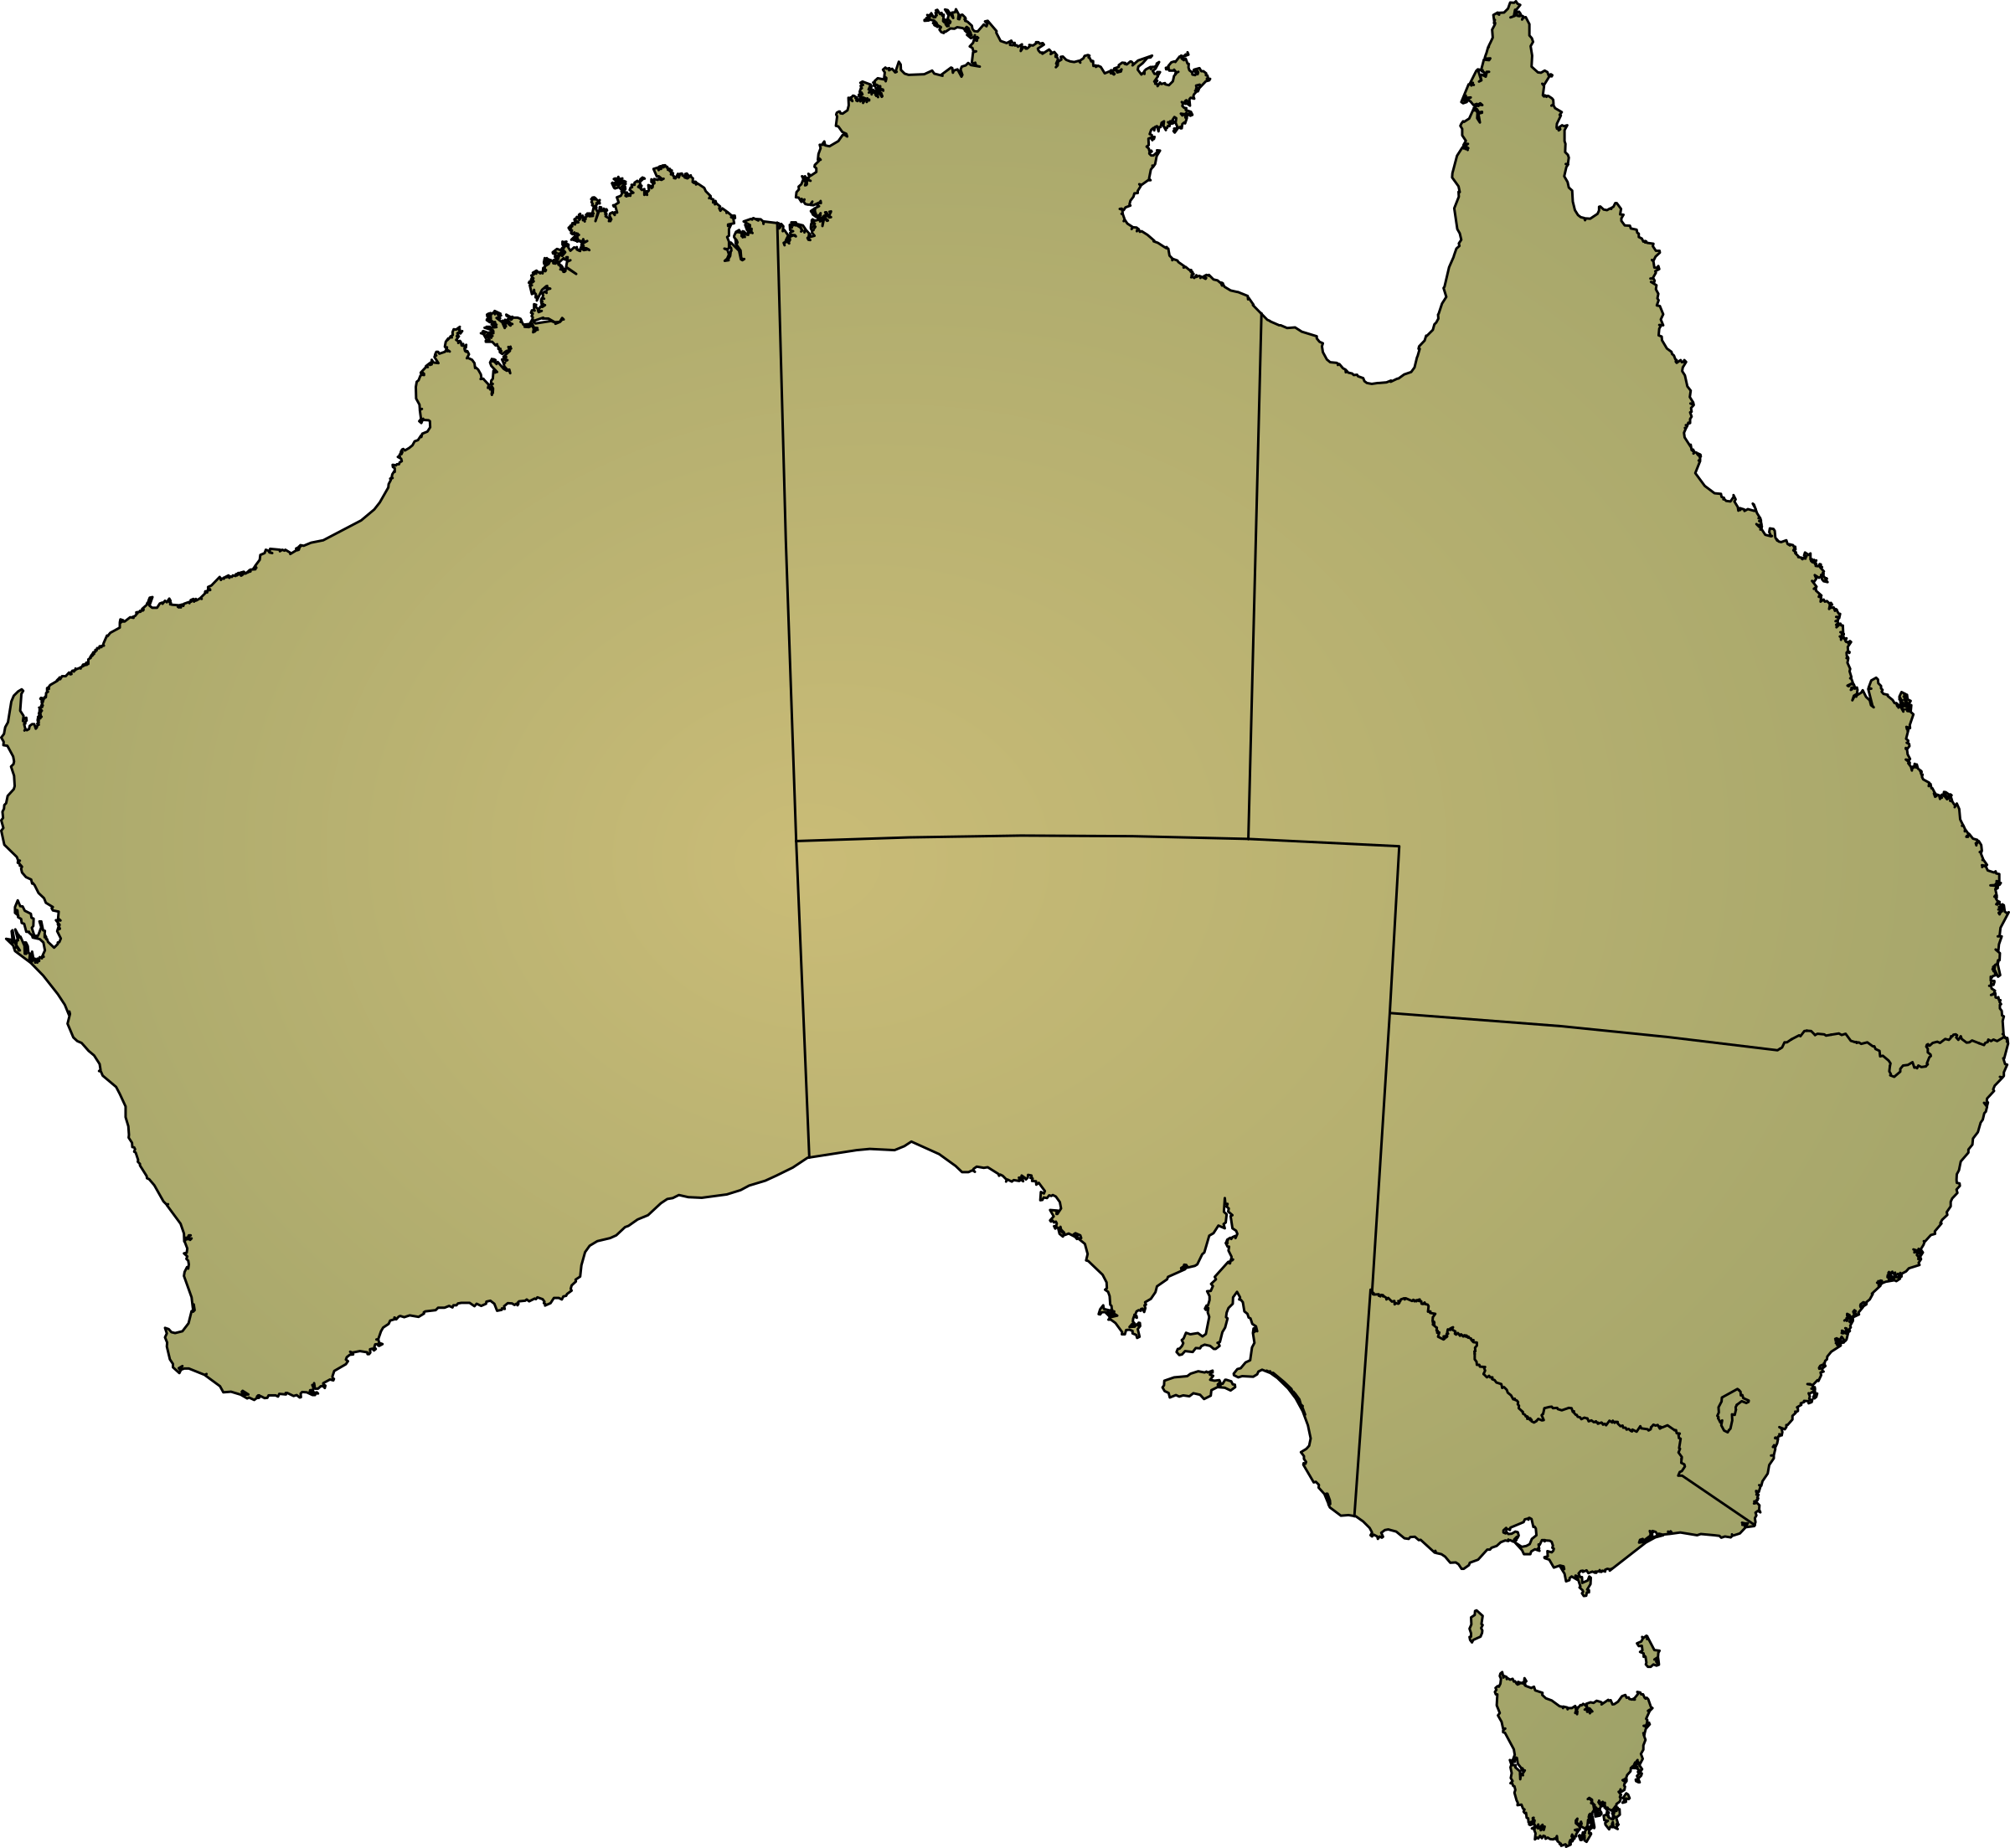 australia-shading-with-boundaries by cgoerner